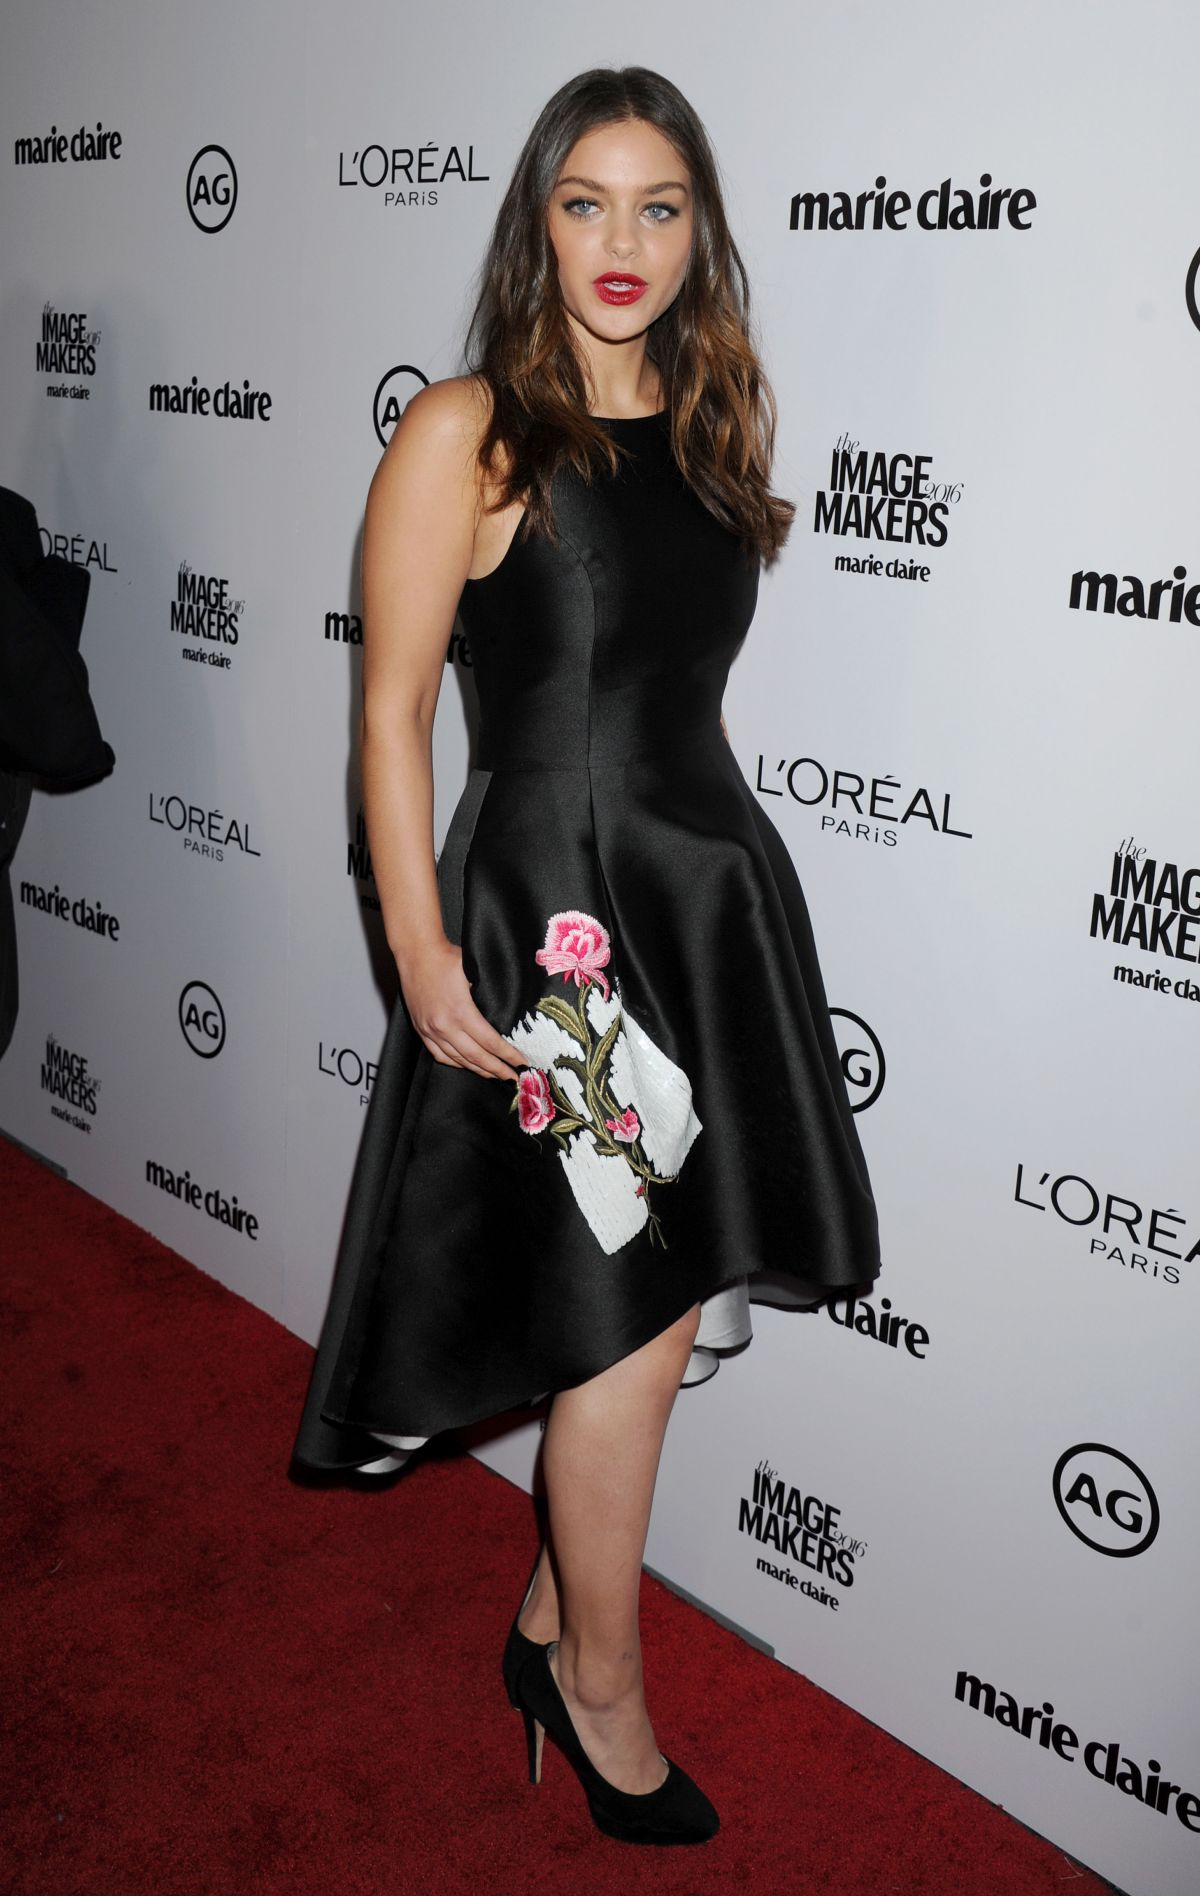 ODEYA RUSH at 2016 Marie Claire's Image Makers Awards in Los Angeles 01/12/2016